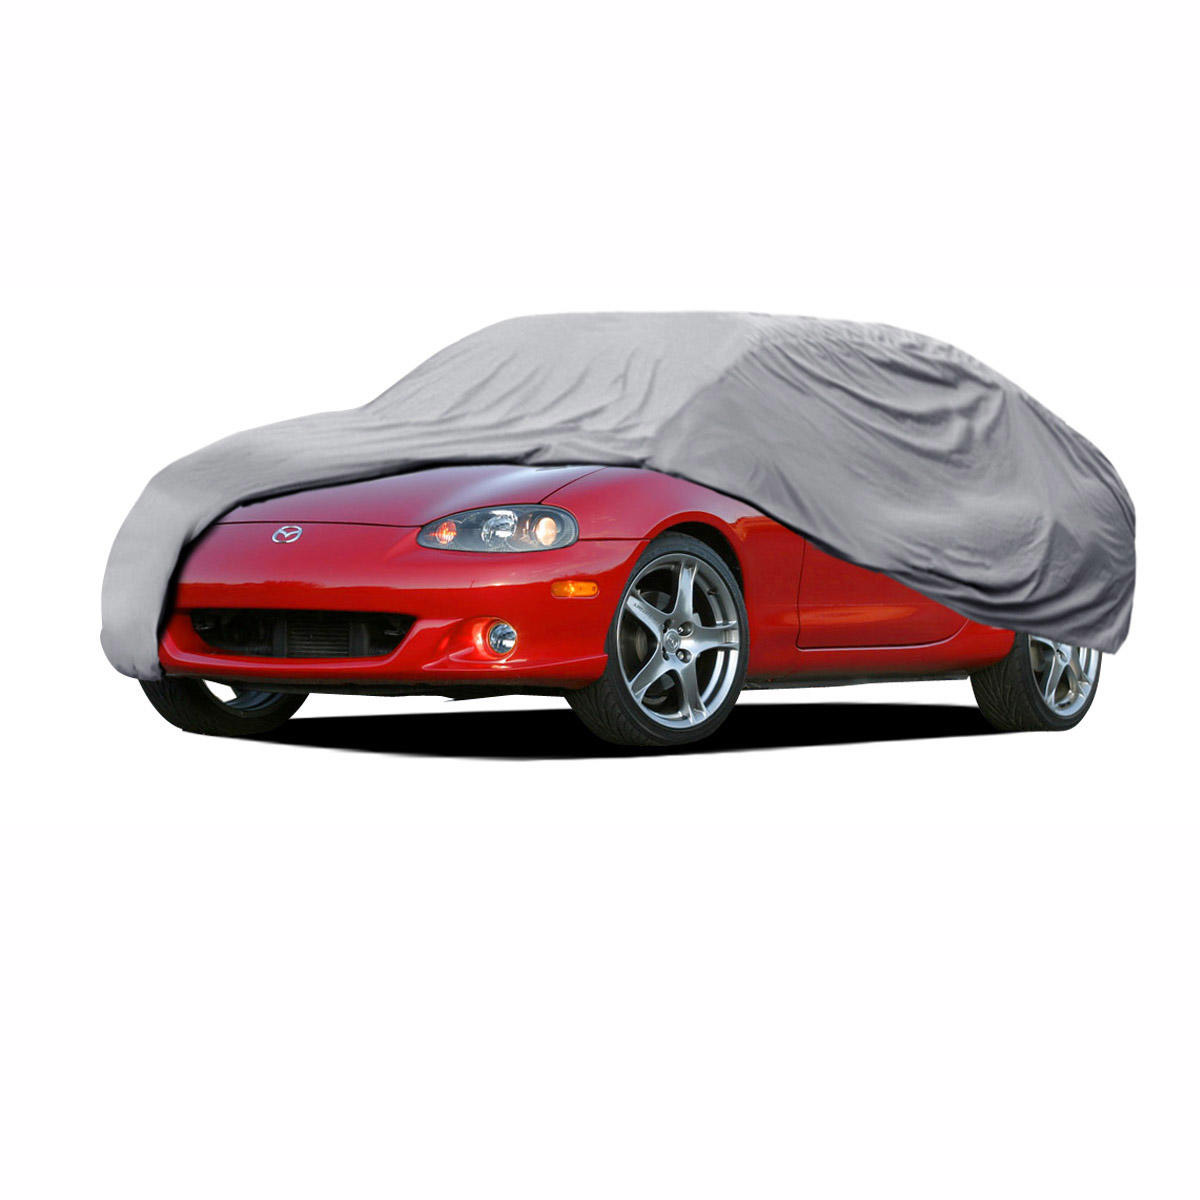 car cover for mazda miata mx5 outdoor waterproof all weather breathable 3 layers ebay. Black Bedroom Furniture Sets. Home Design Ideas